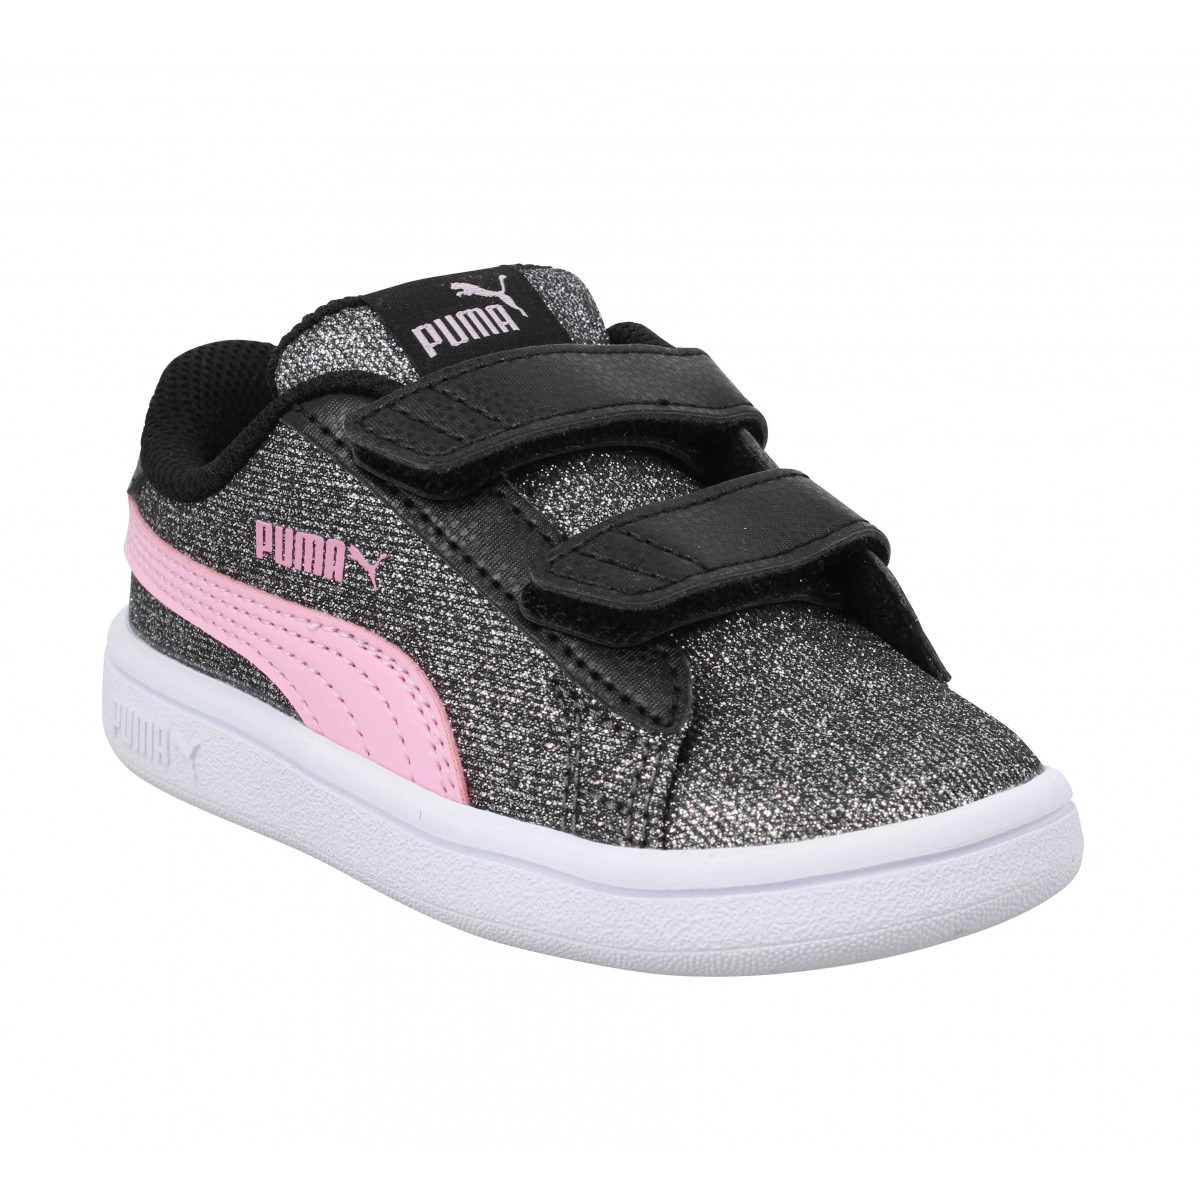 Baskets PUMA Smash Glitz toile Enfant Black Pink